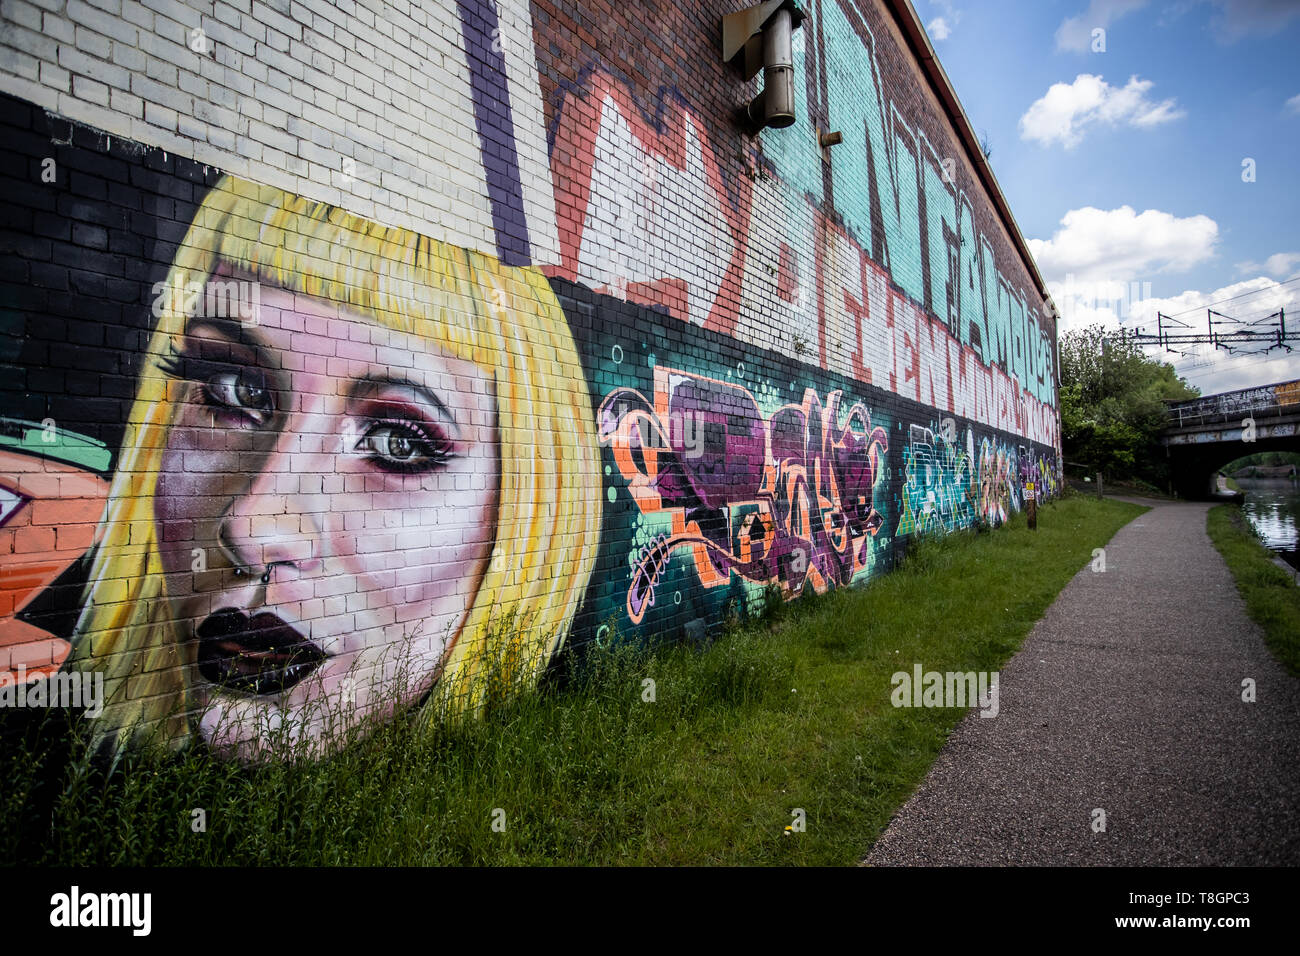 Graffiti along the towpath of the canal in Smethwick, Birmingham, UK - Stock Image